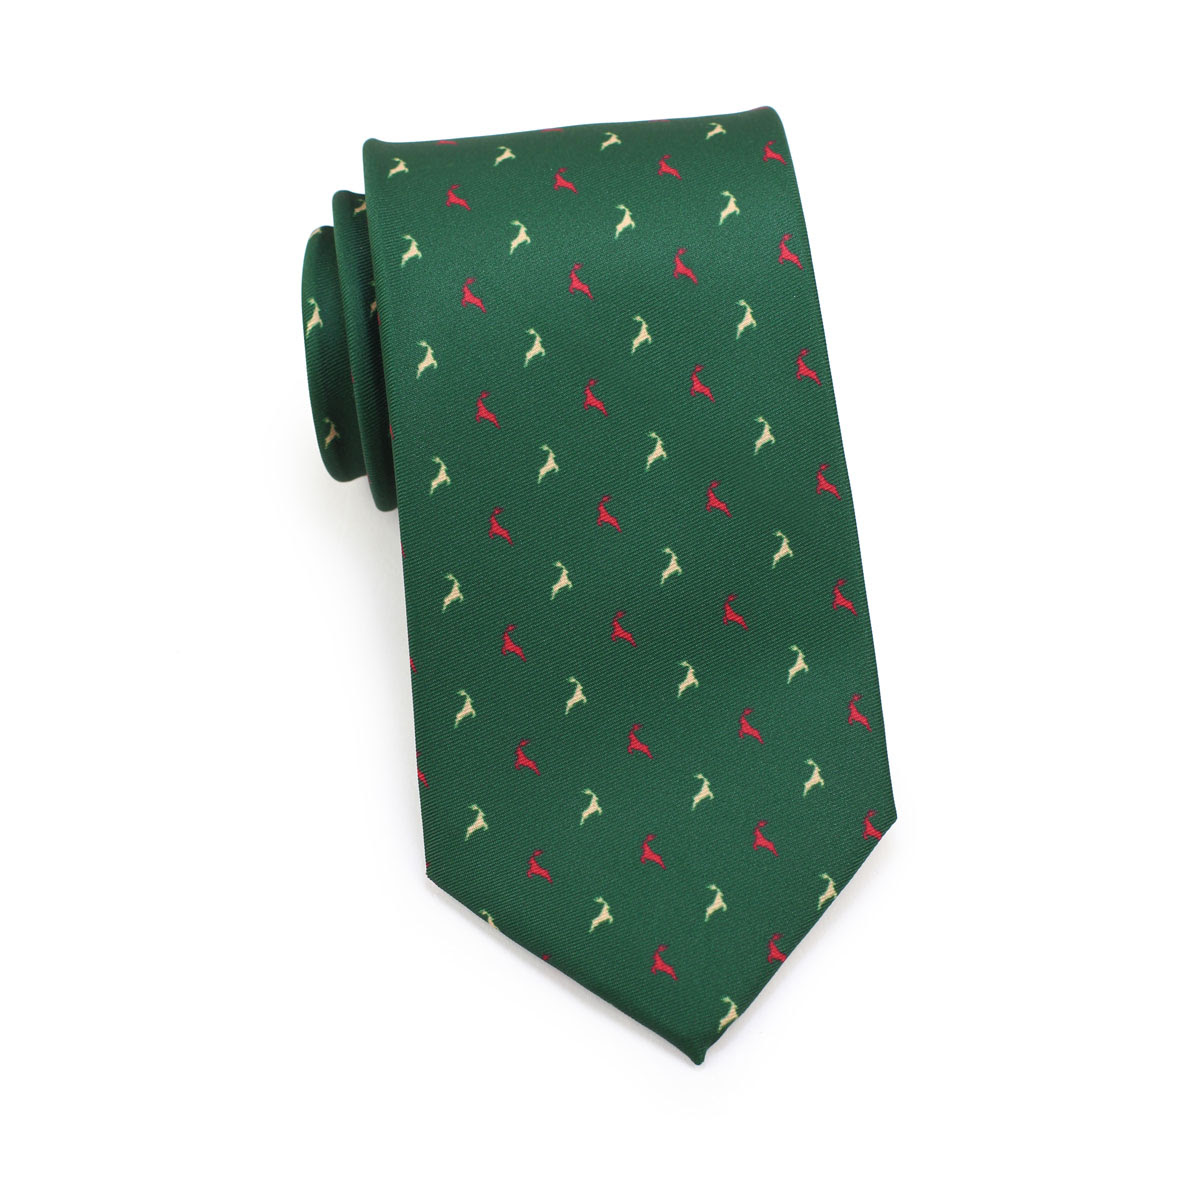 reindeer design mens tie in hunter green